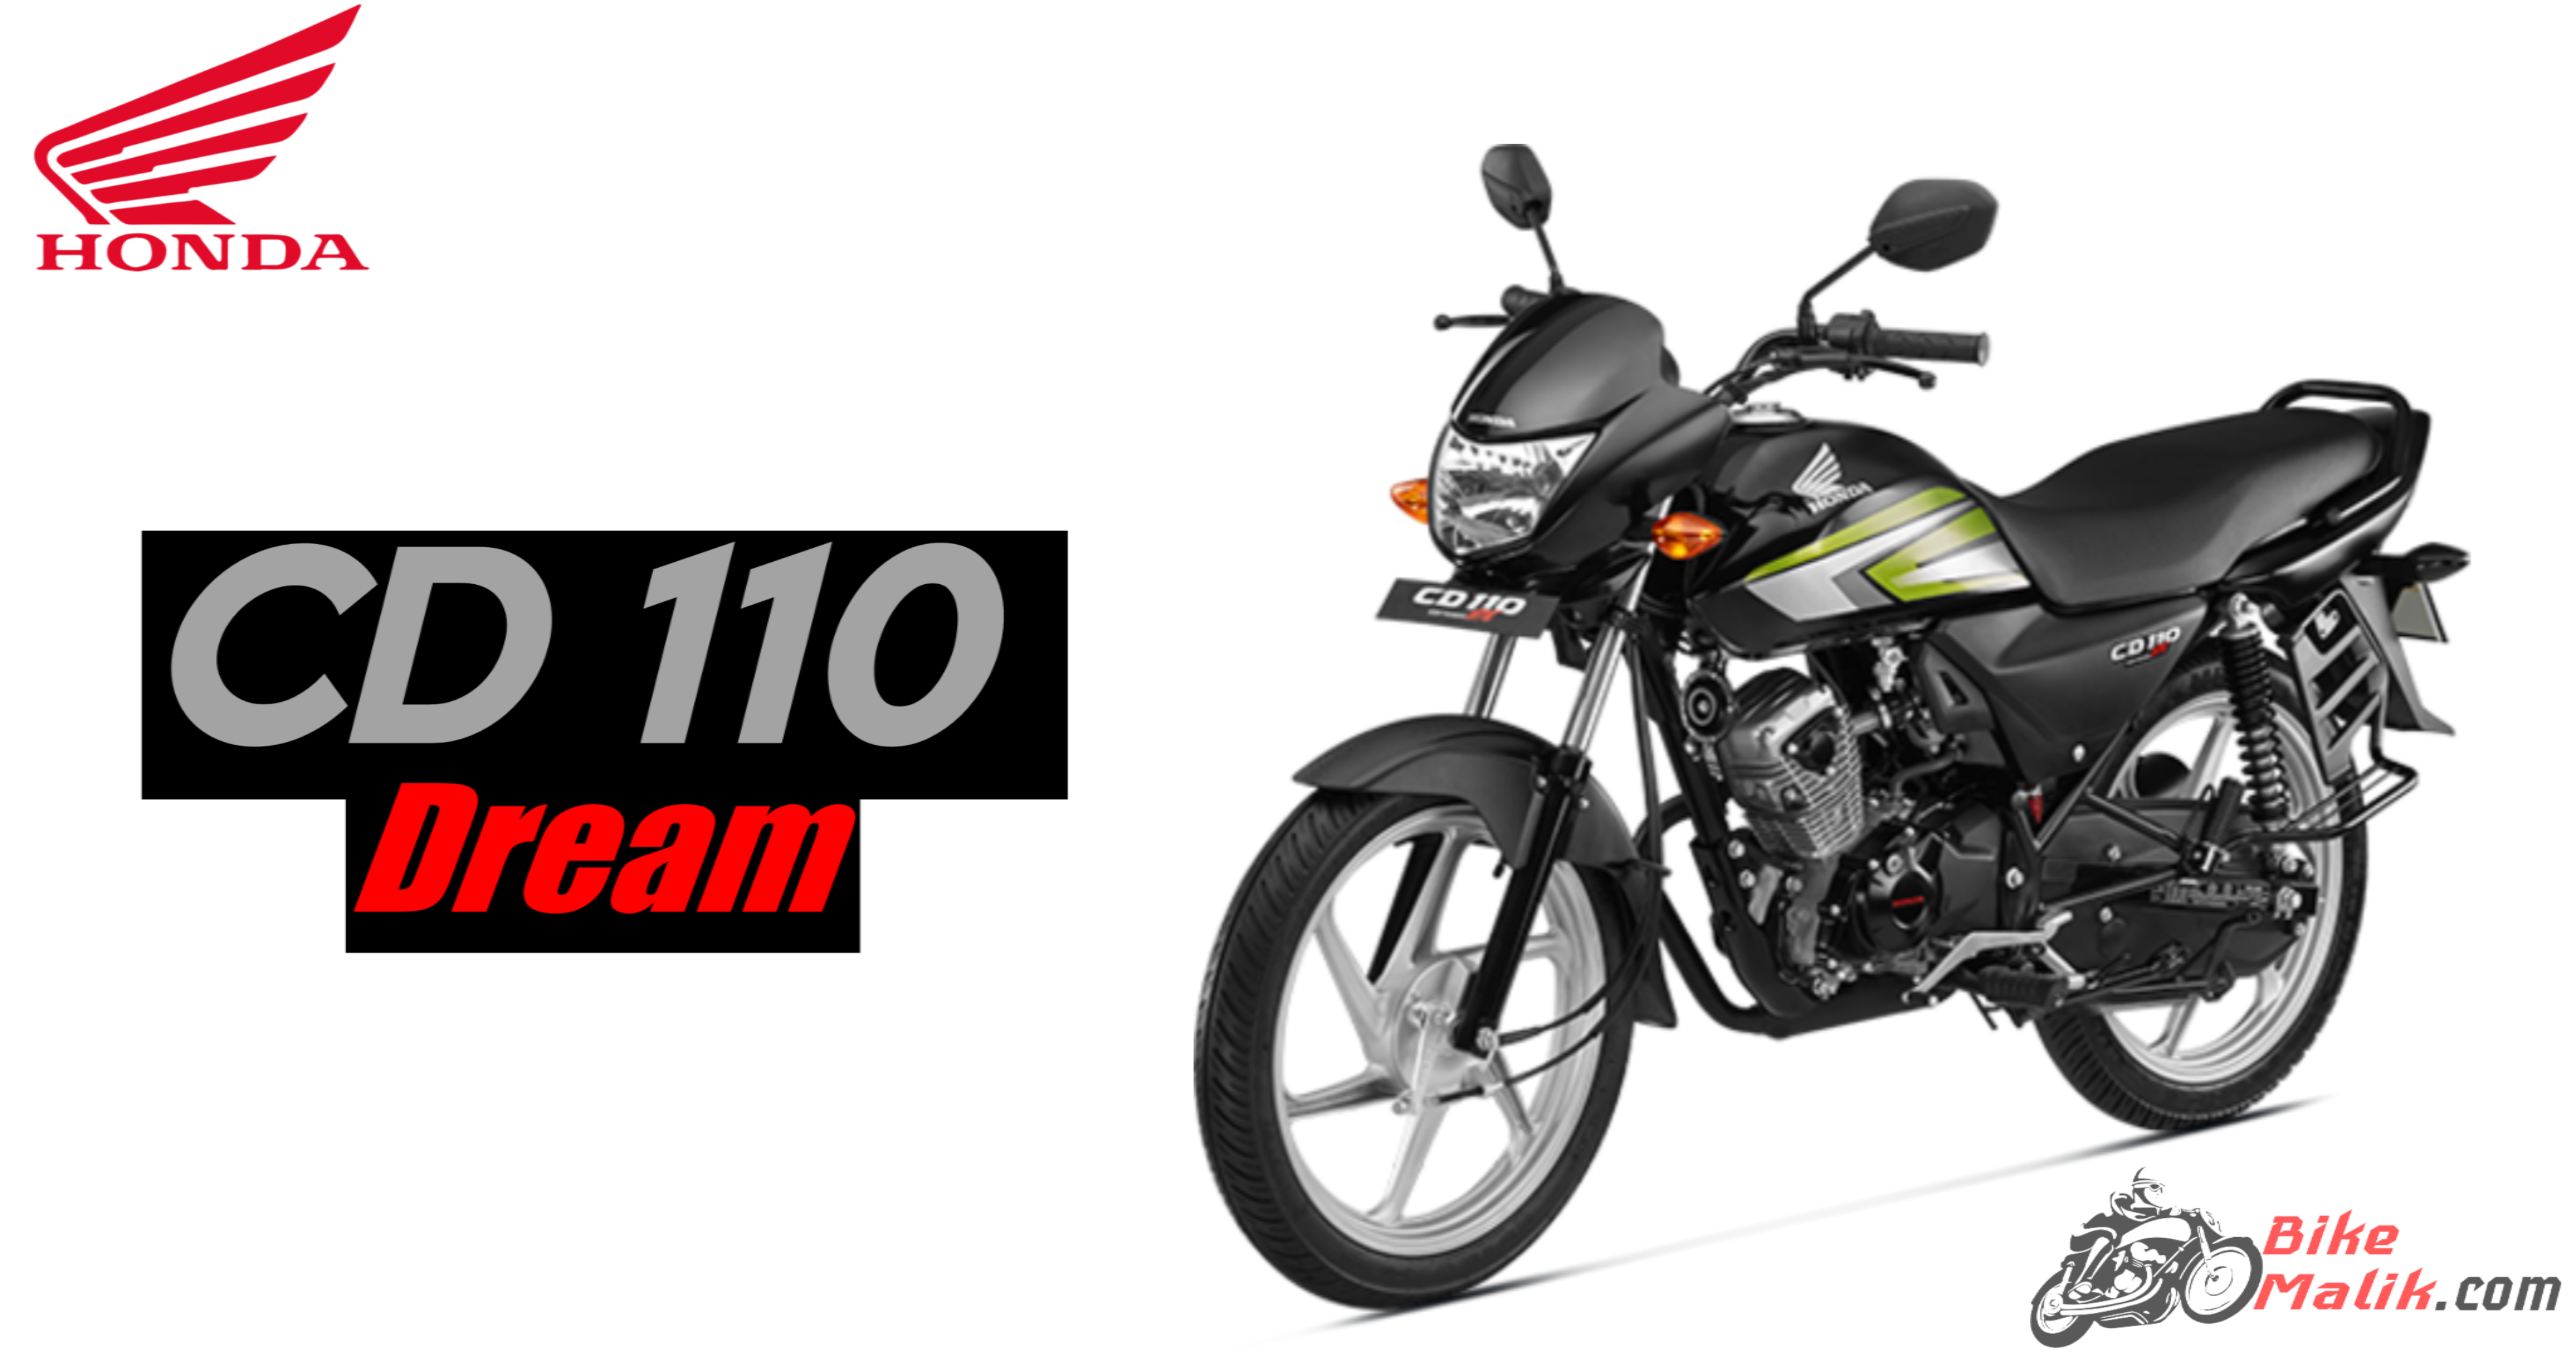 Honda CD 110 Dream Price, Mileage, Images, Colors, Features, Specs & 360-View